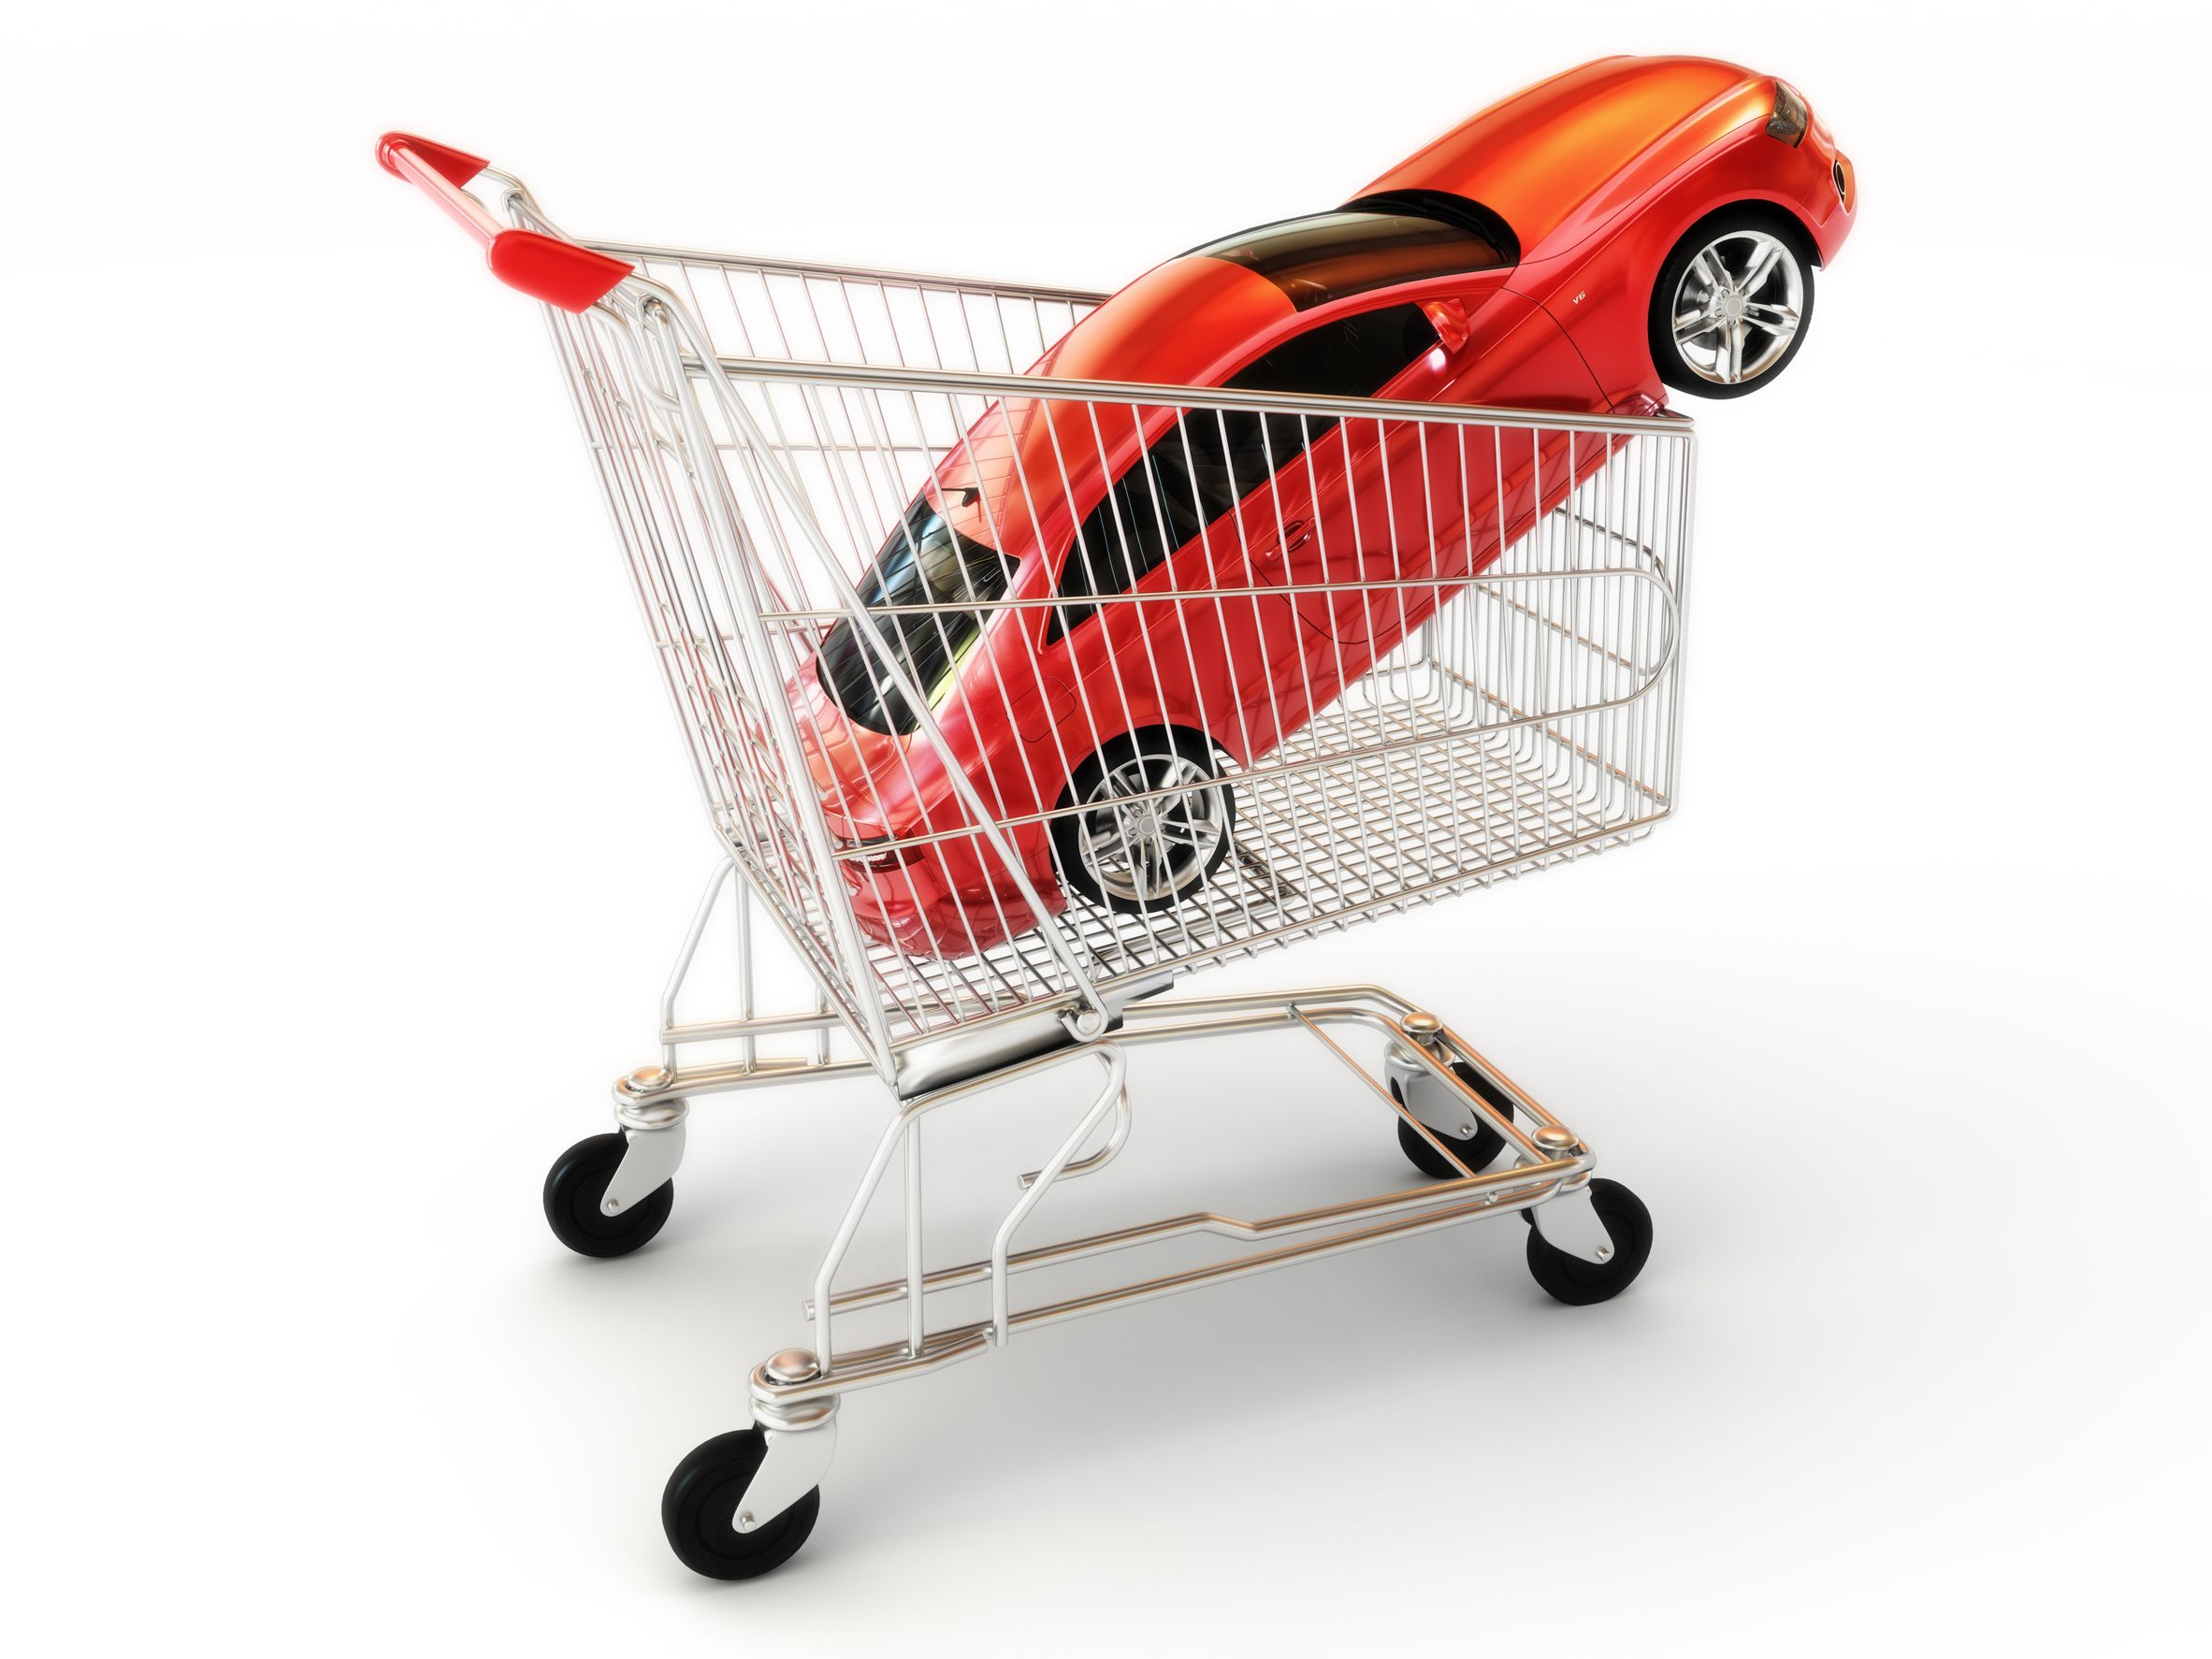 Automotive Merchandising: What It Is, Why It Works, and How We Do It